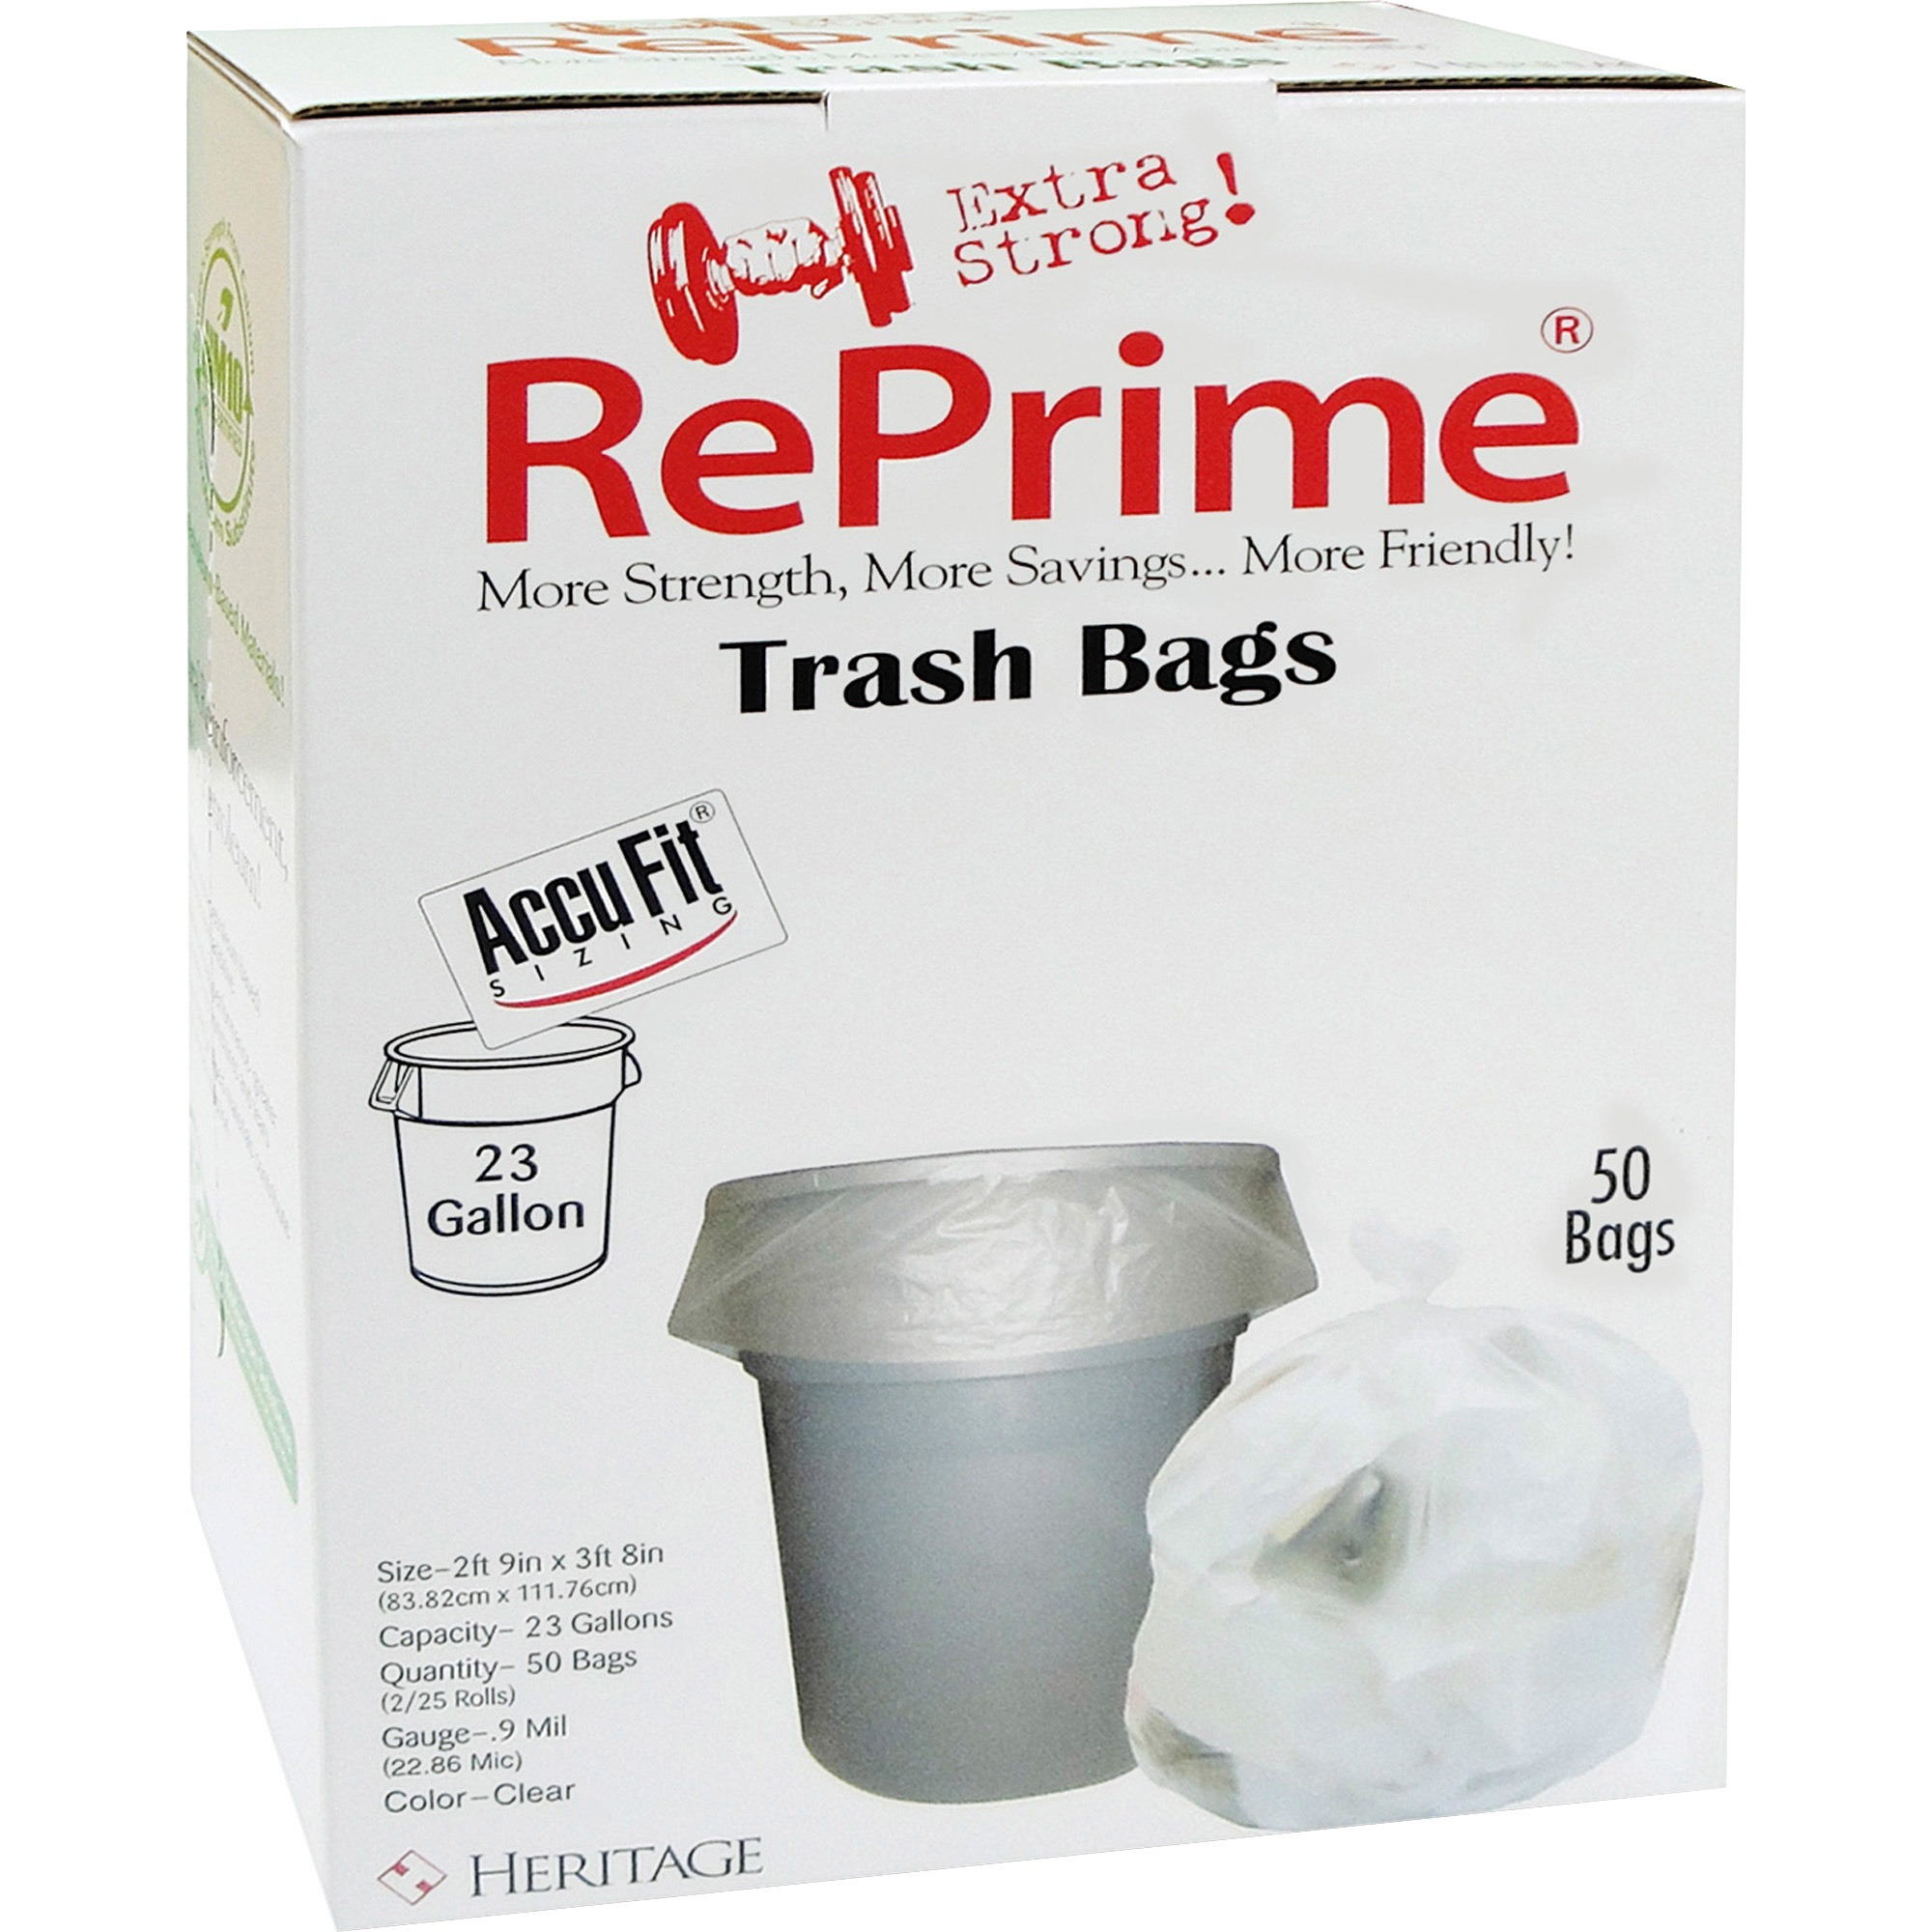 Heritage, HERH5645TCRC1, Accufit RePrime Trash Bags, 50 / Box, Clear, 23 gal